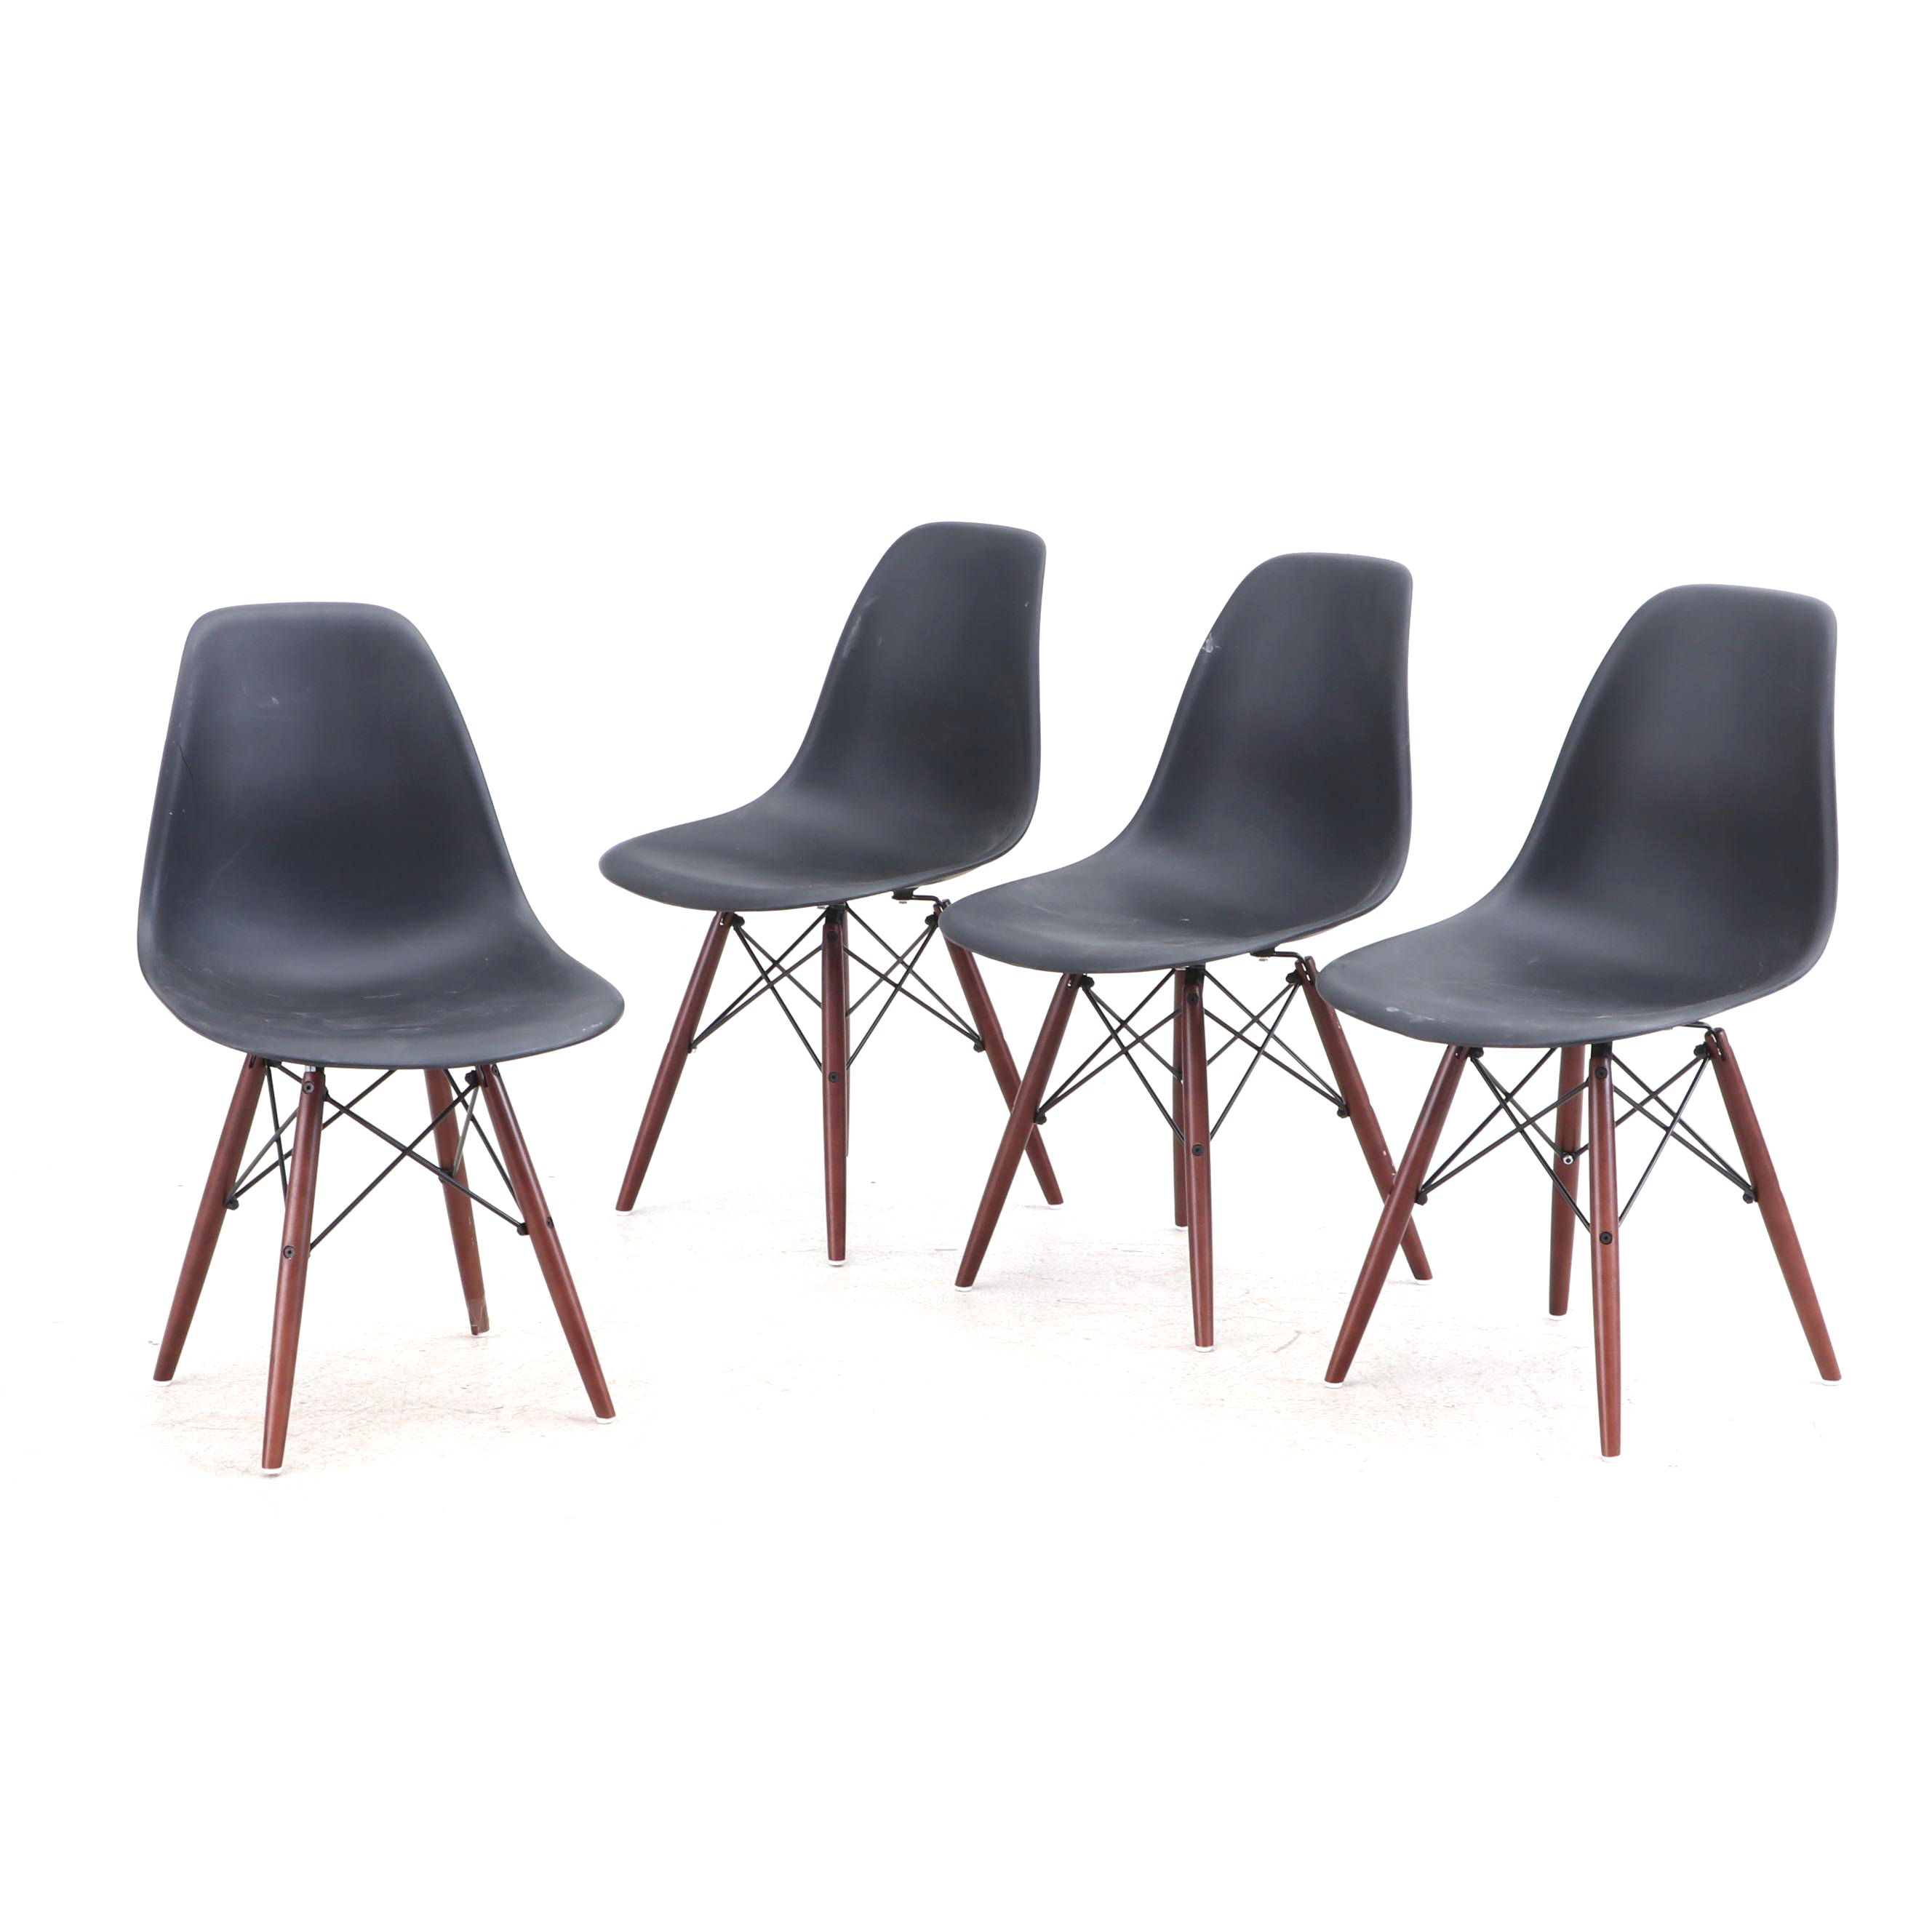 Eiffel Style Molded Shell Side Chairs with Walnut Finish Legs, Contemporary